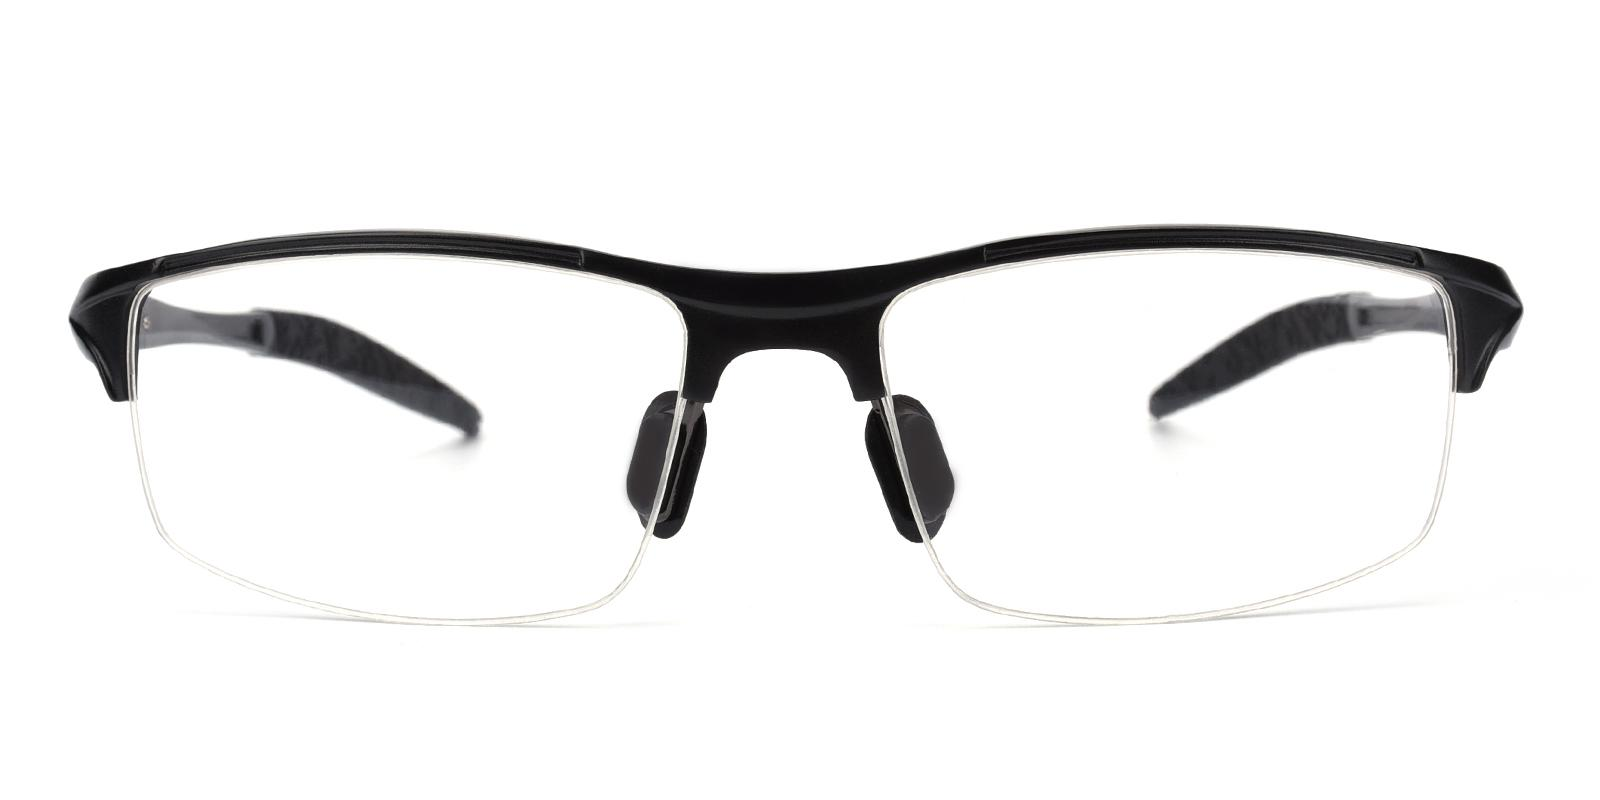 Darily-Black-Rectangle-Metal-SportsGlasses-additional2